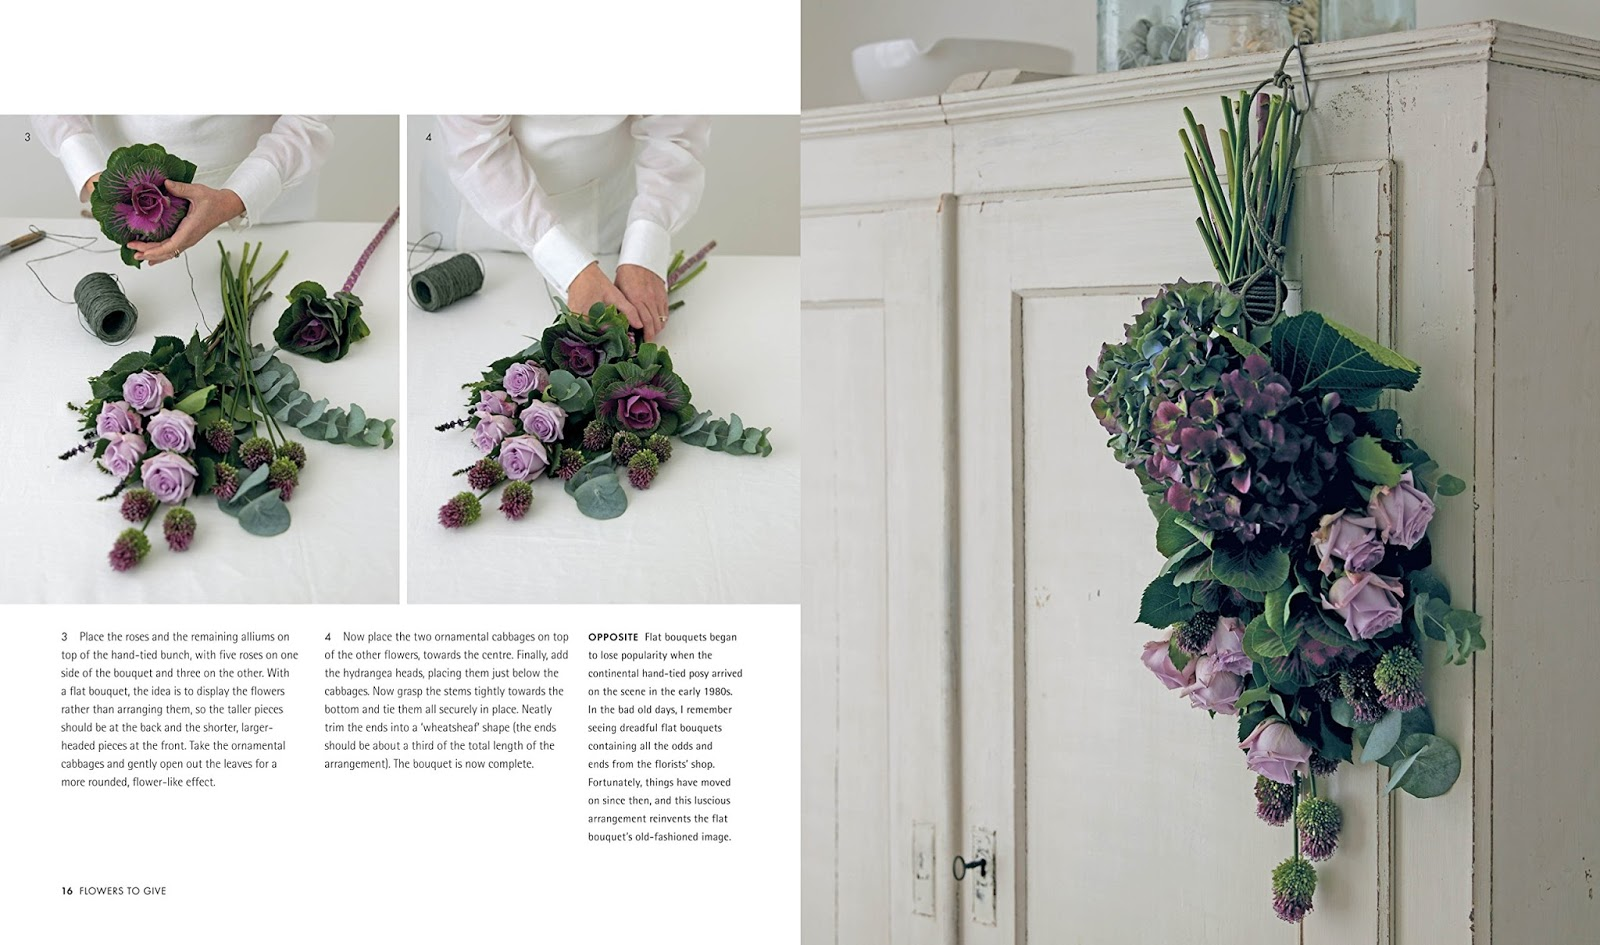 Honestly The Book Is A Must For Anyone Who Enjoys Beautiful Flowers And DIY Floral Arrangements Its An Impeccably Detailed Resource Getting It Right